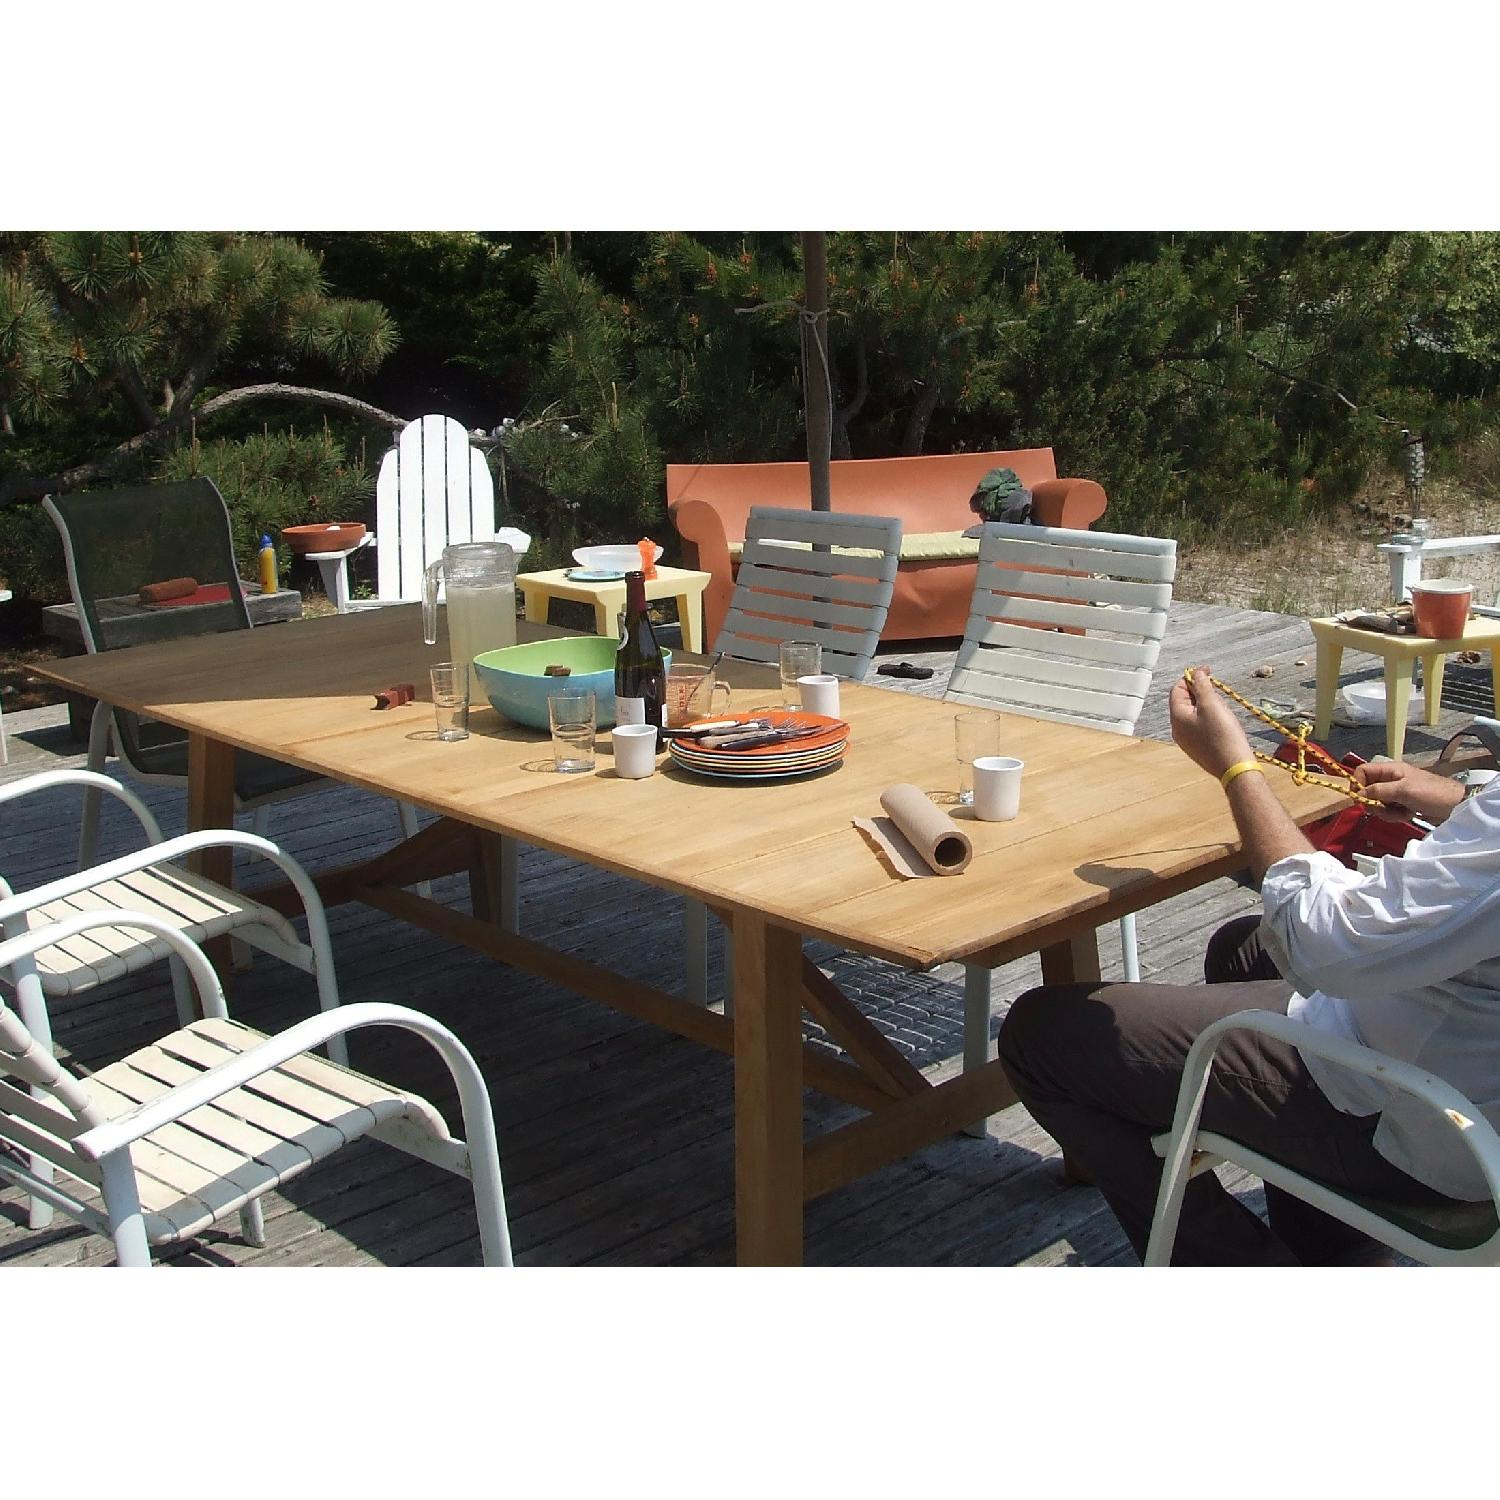 Design Within Reach Alden Collection Teak Outdoor Dining Table - image-1